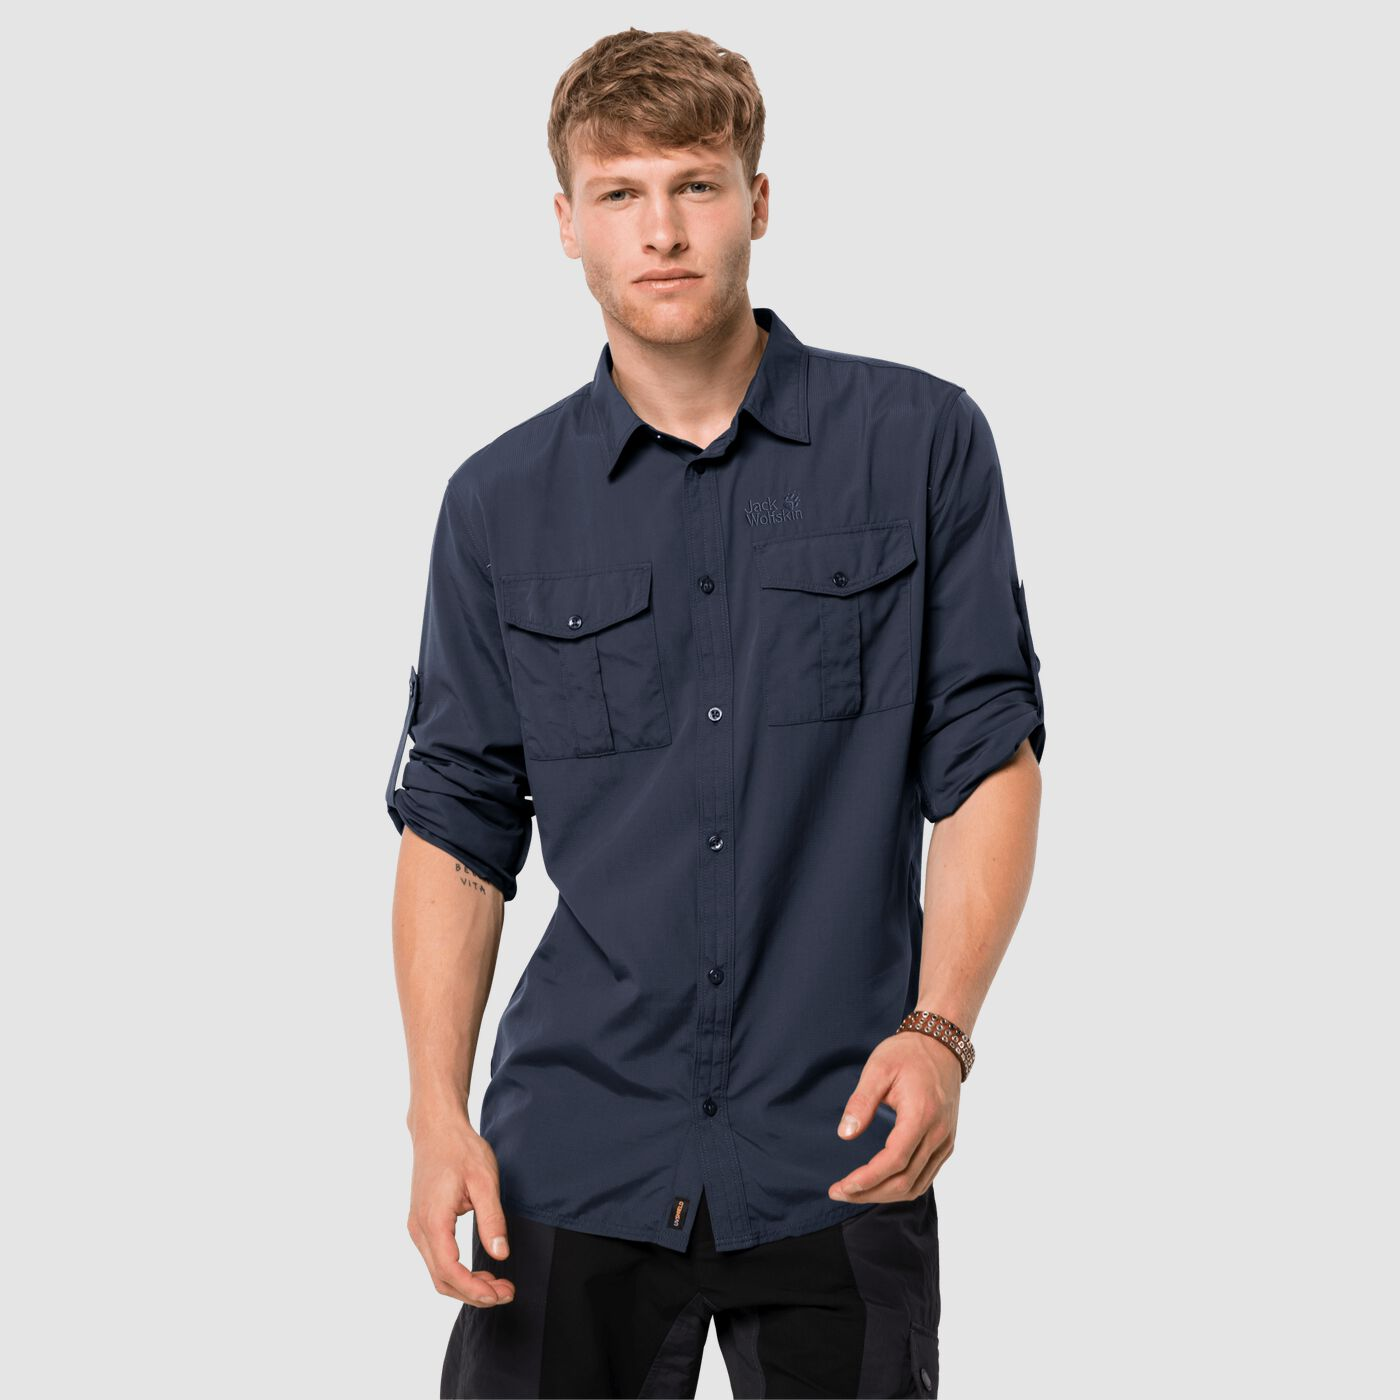 ATACAMA ROLL-UP SHIRT